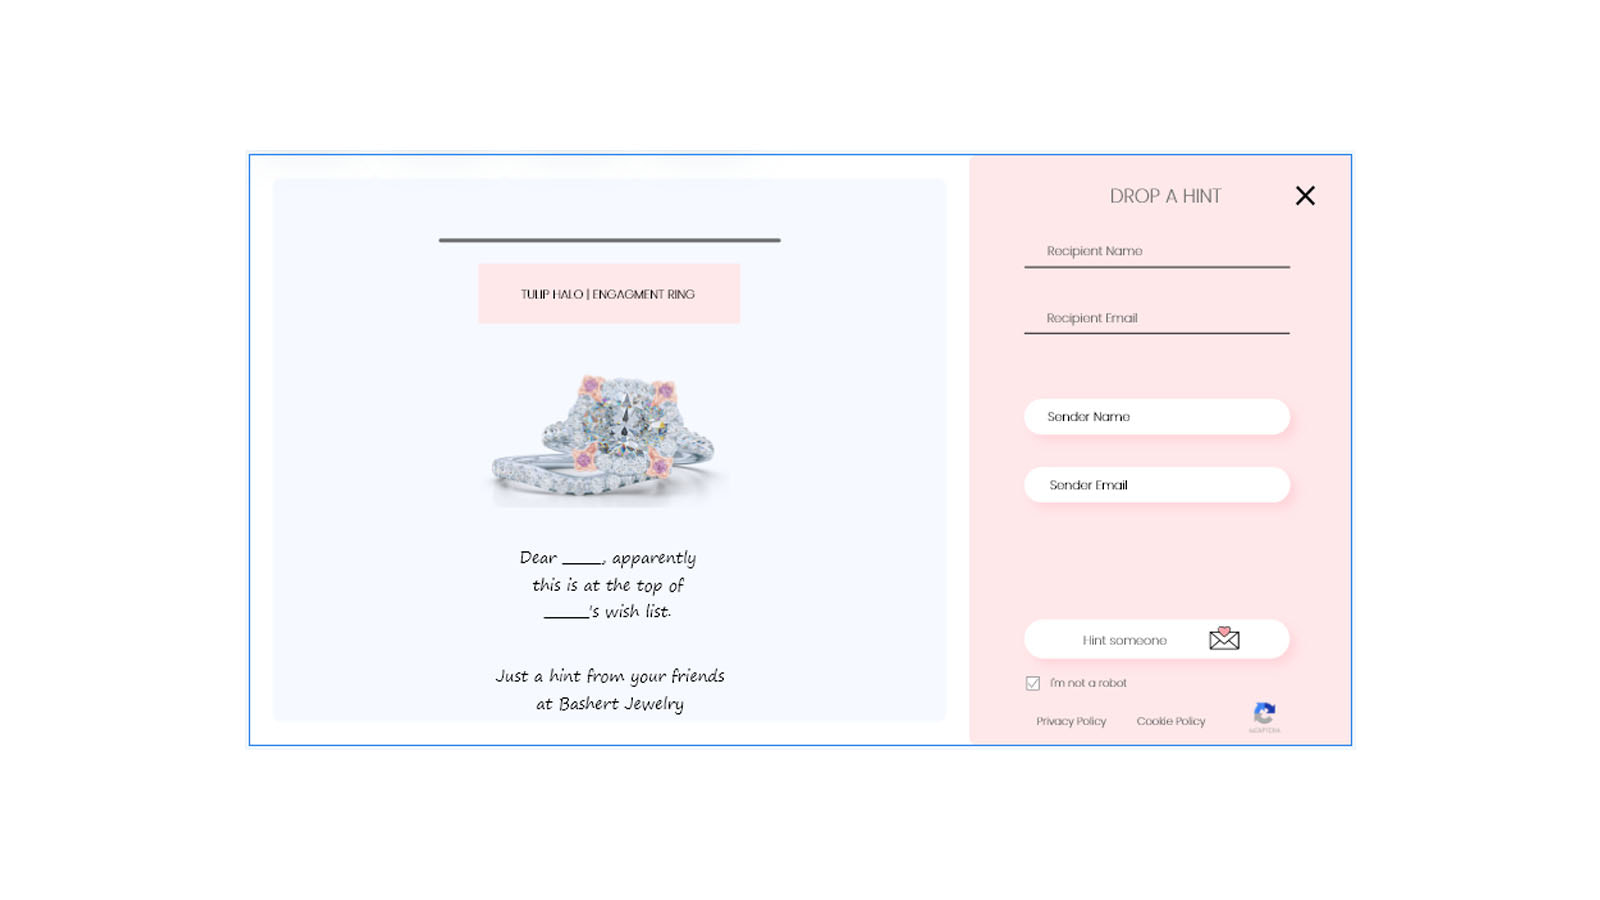 Brand your store's hints and messages in your unique way!